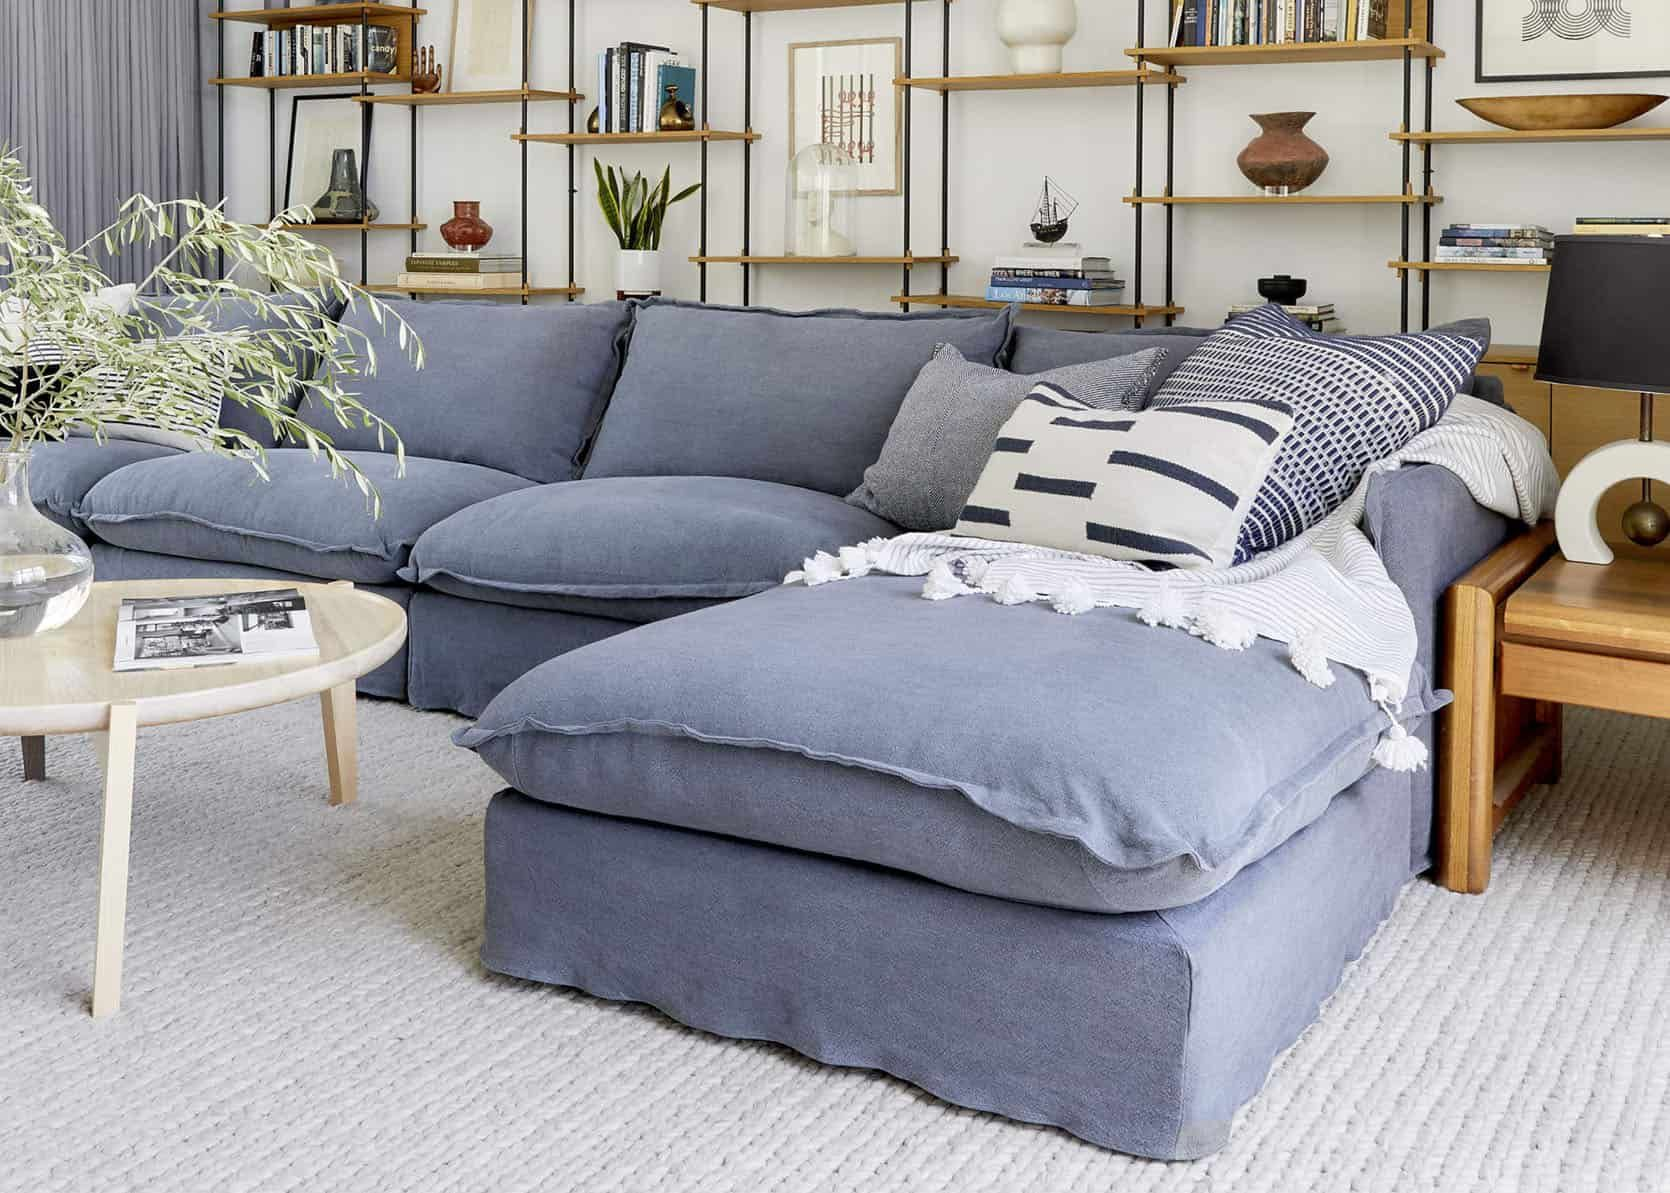 The Most Comfortable Couch Review | Gypsy Tan